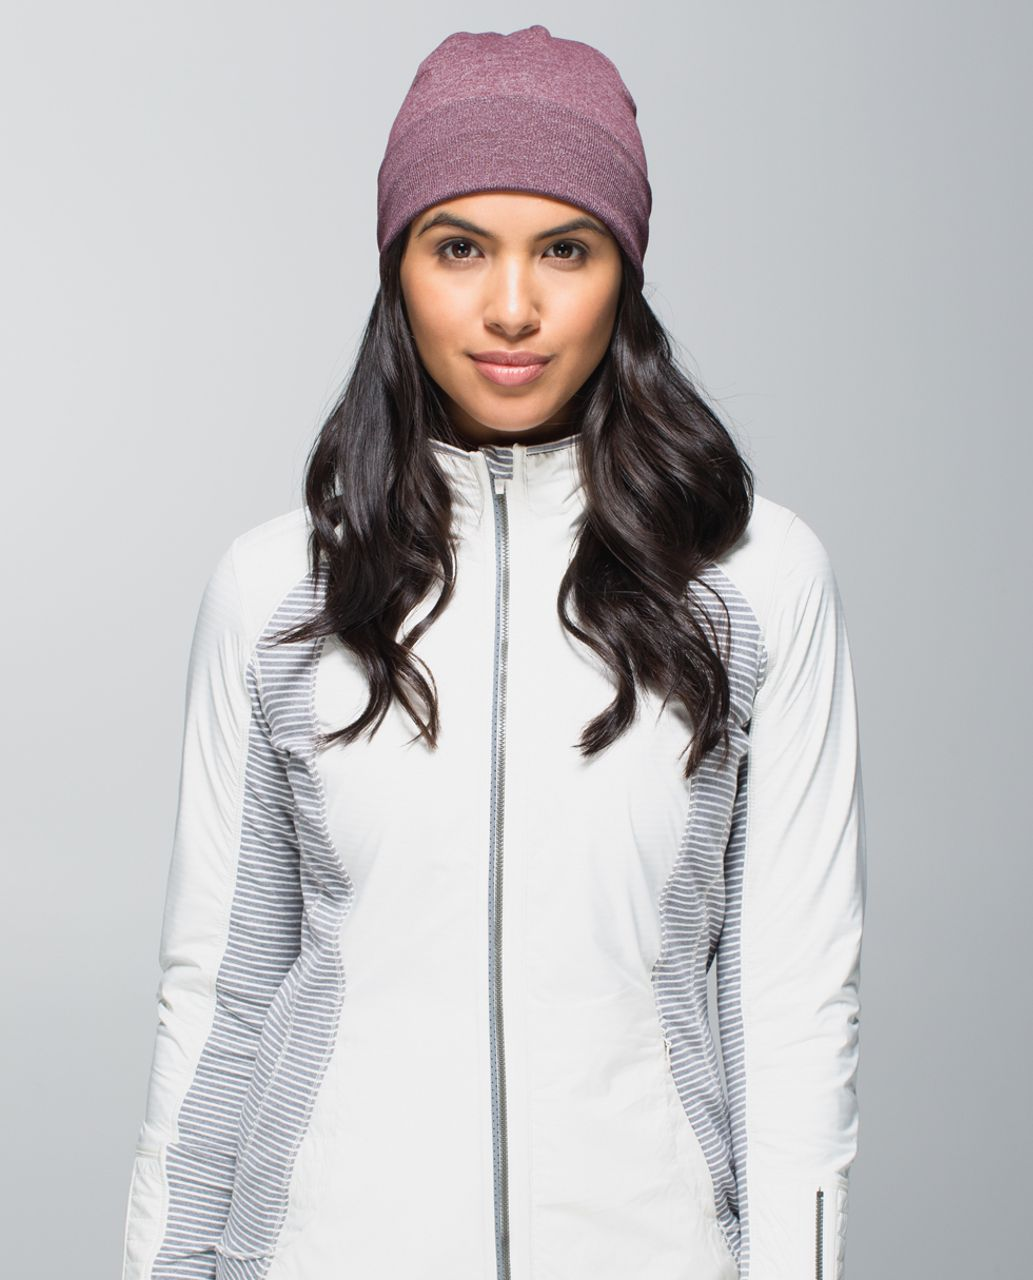 Lululemon Run With Me Toque - Hyper Stripe Heathered Bordeaux Drama Bumble Berry / Heathered Bordeaux Drama